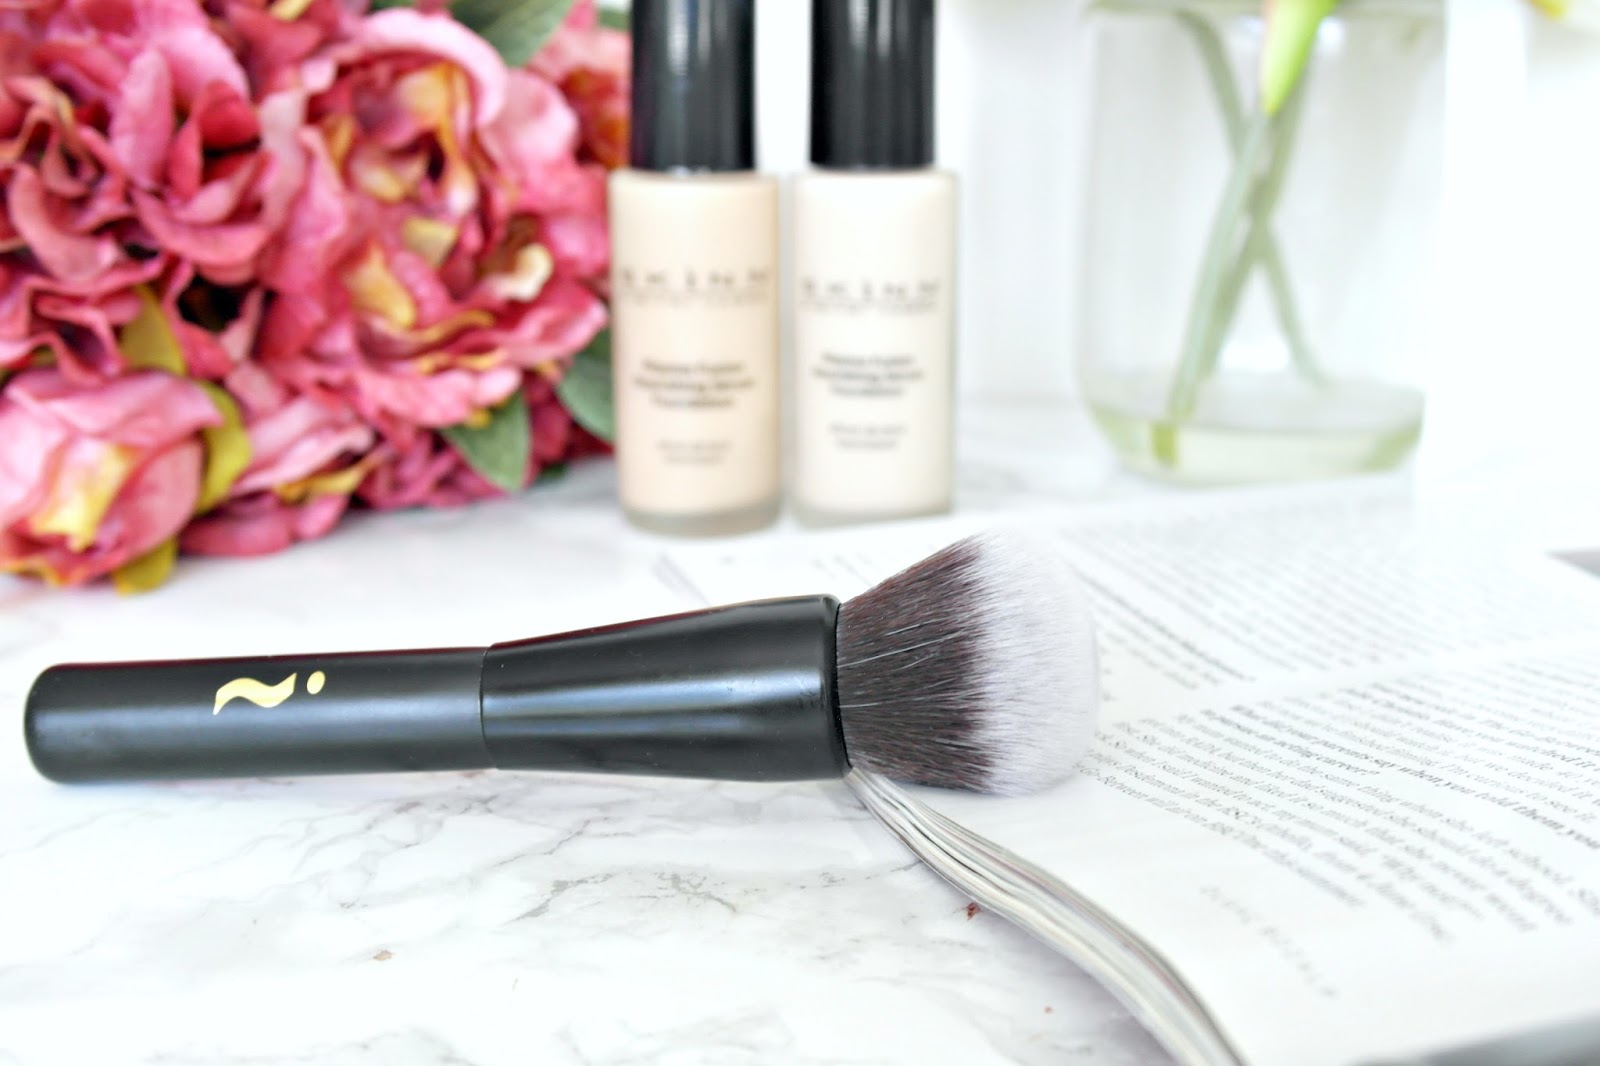 Skinn fusion illusion foundation brush, review